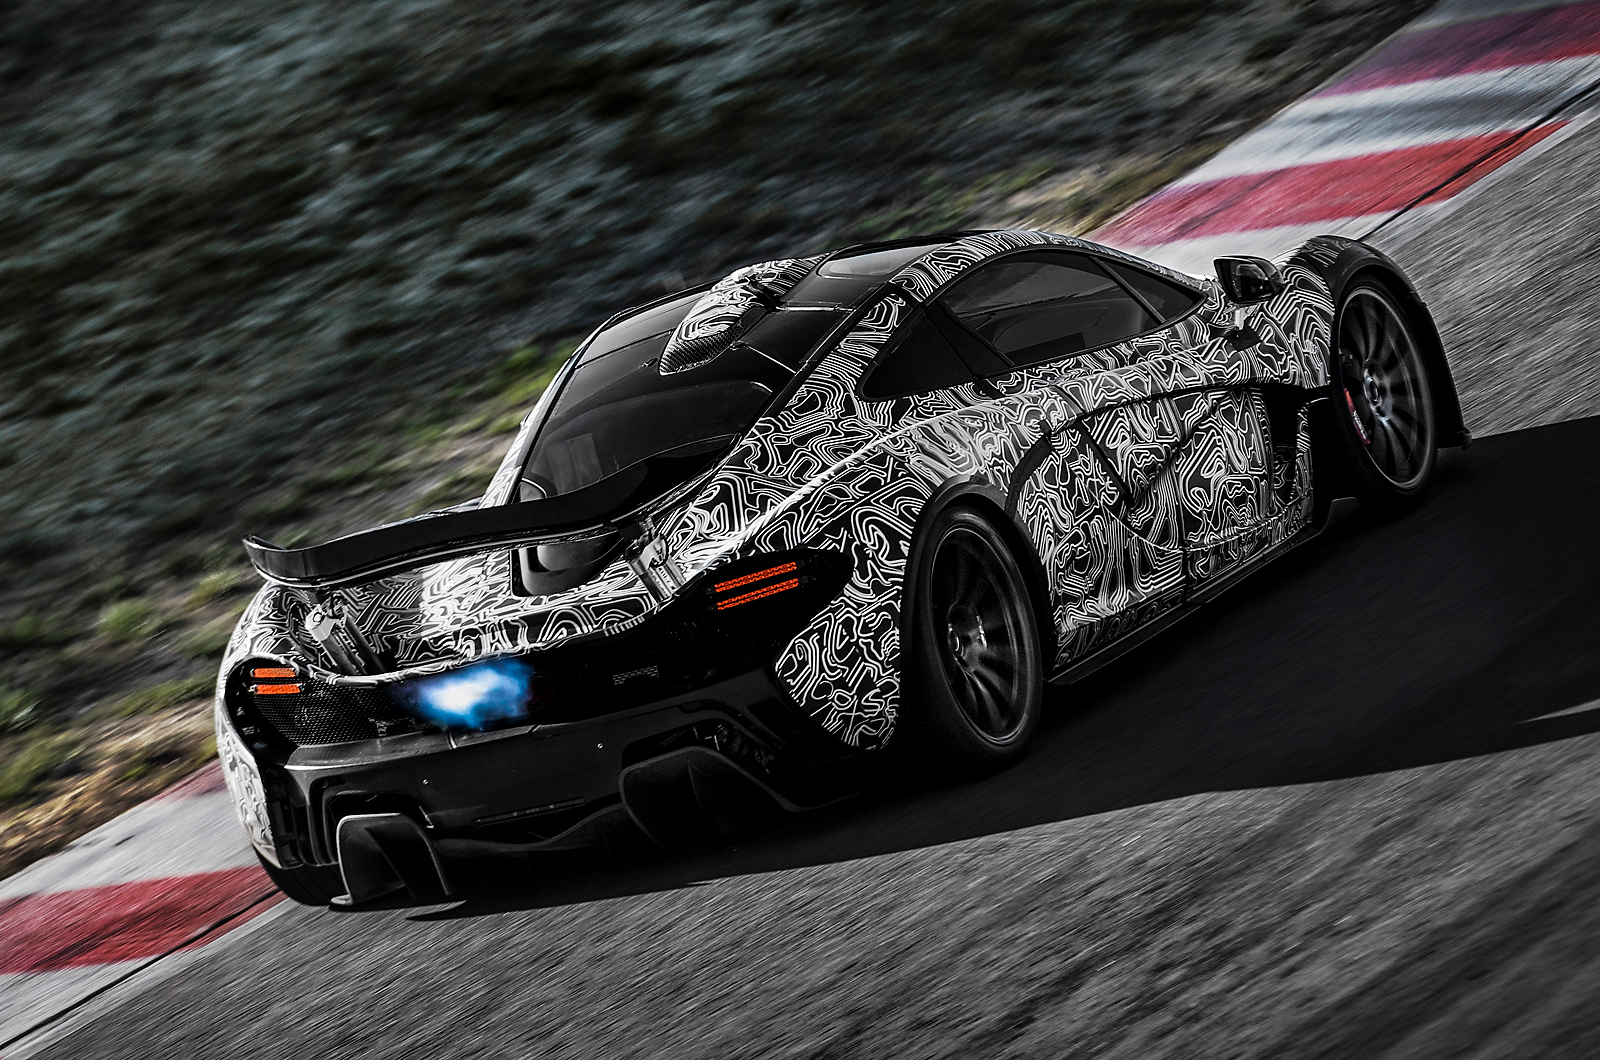 hight resolution of mclaren p1 to produce 903bhp official